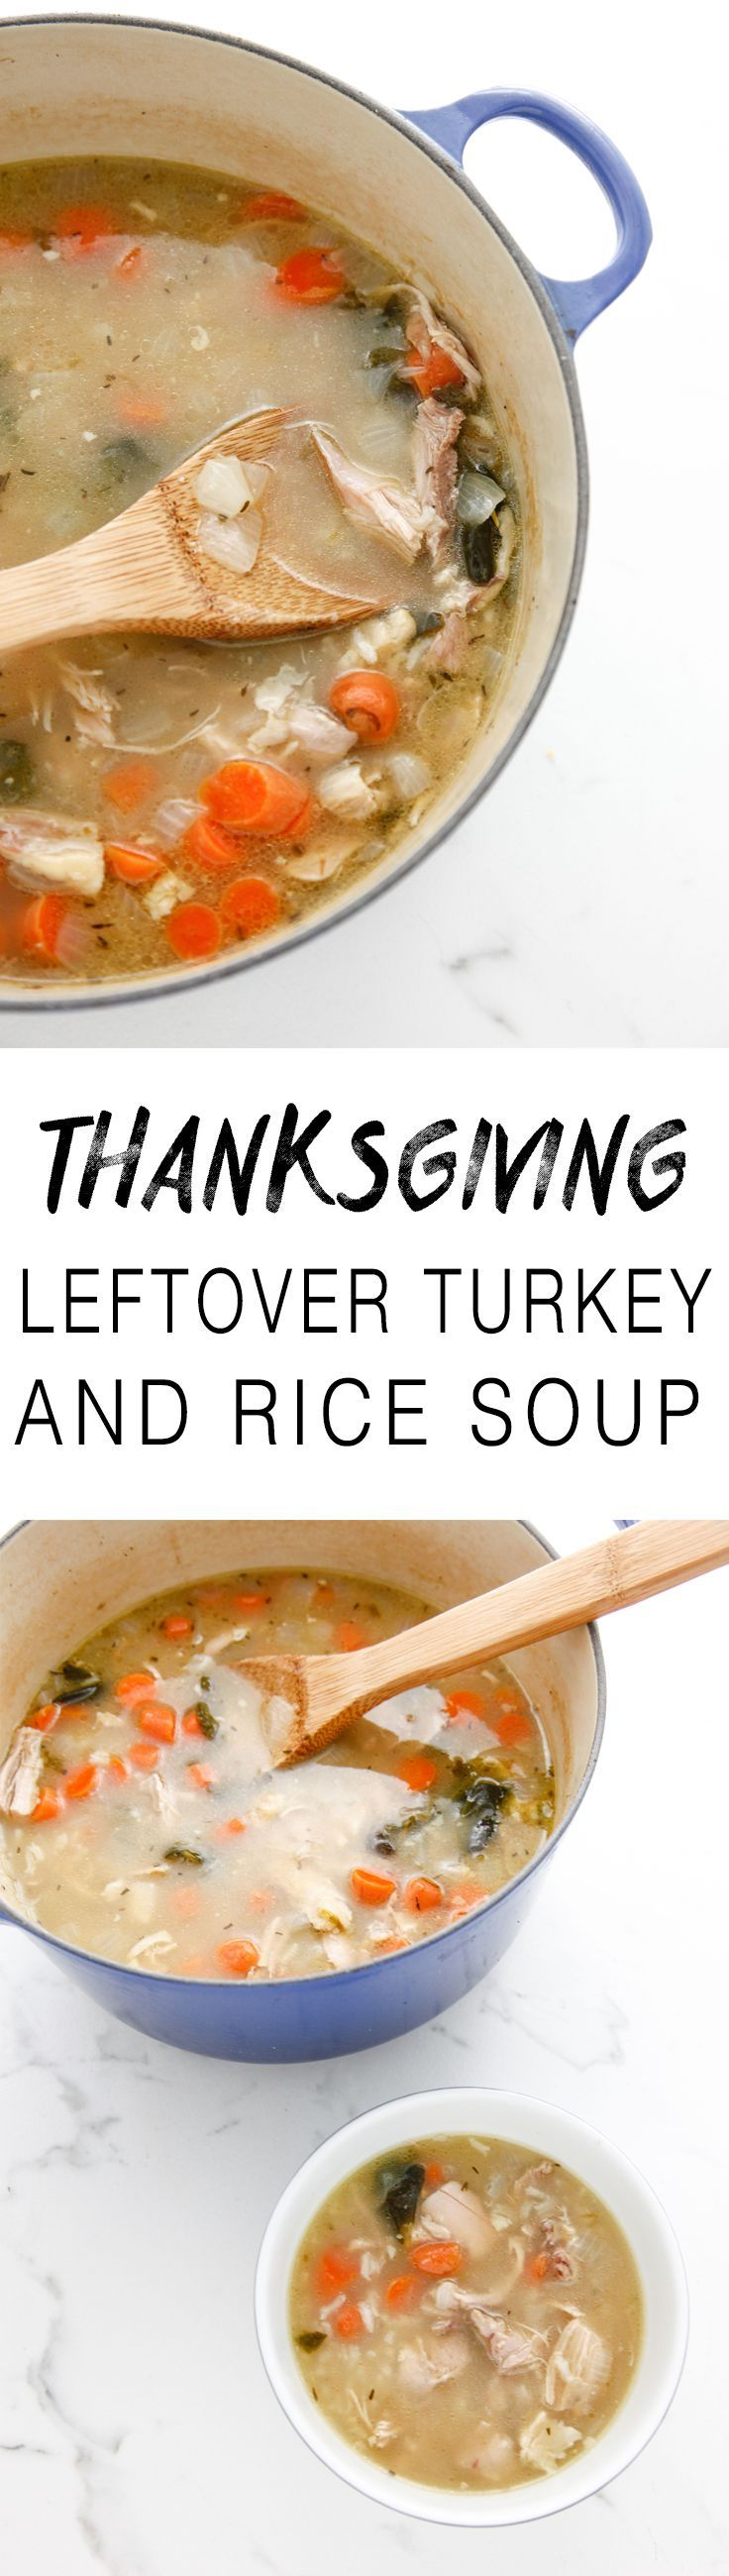 Leftover Turkey and Rice Soup is a great way to use those thanksgiving leftovers. Easy to freeze and save for later, too!